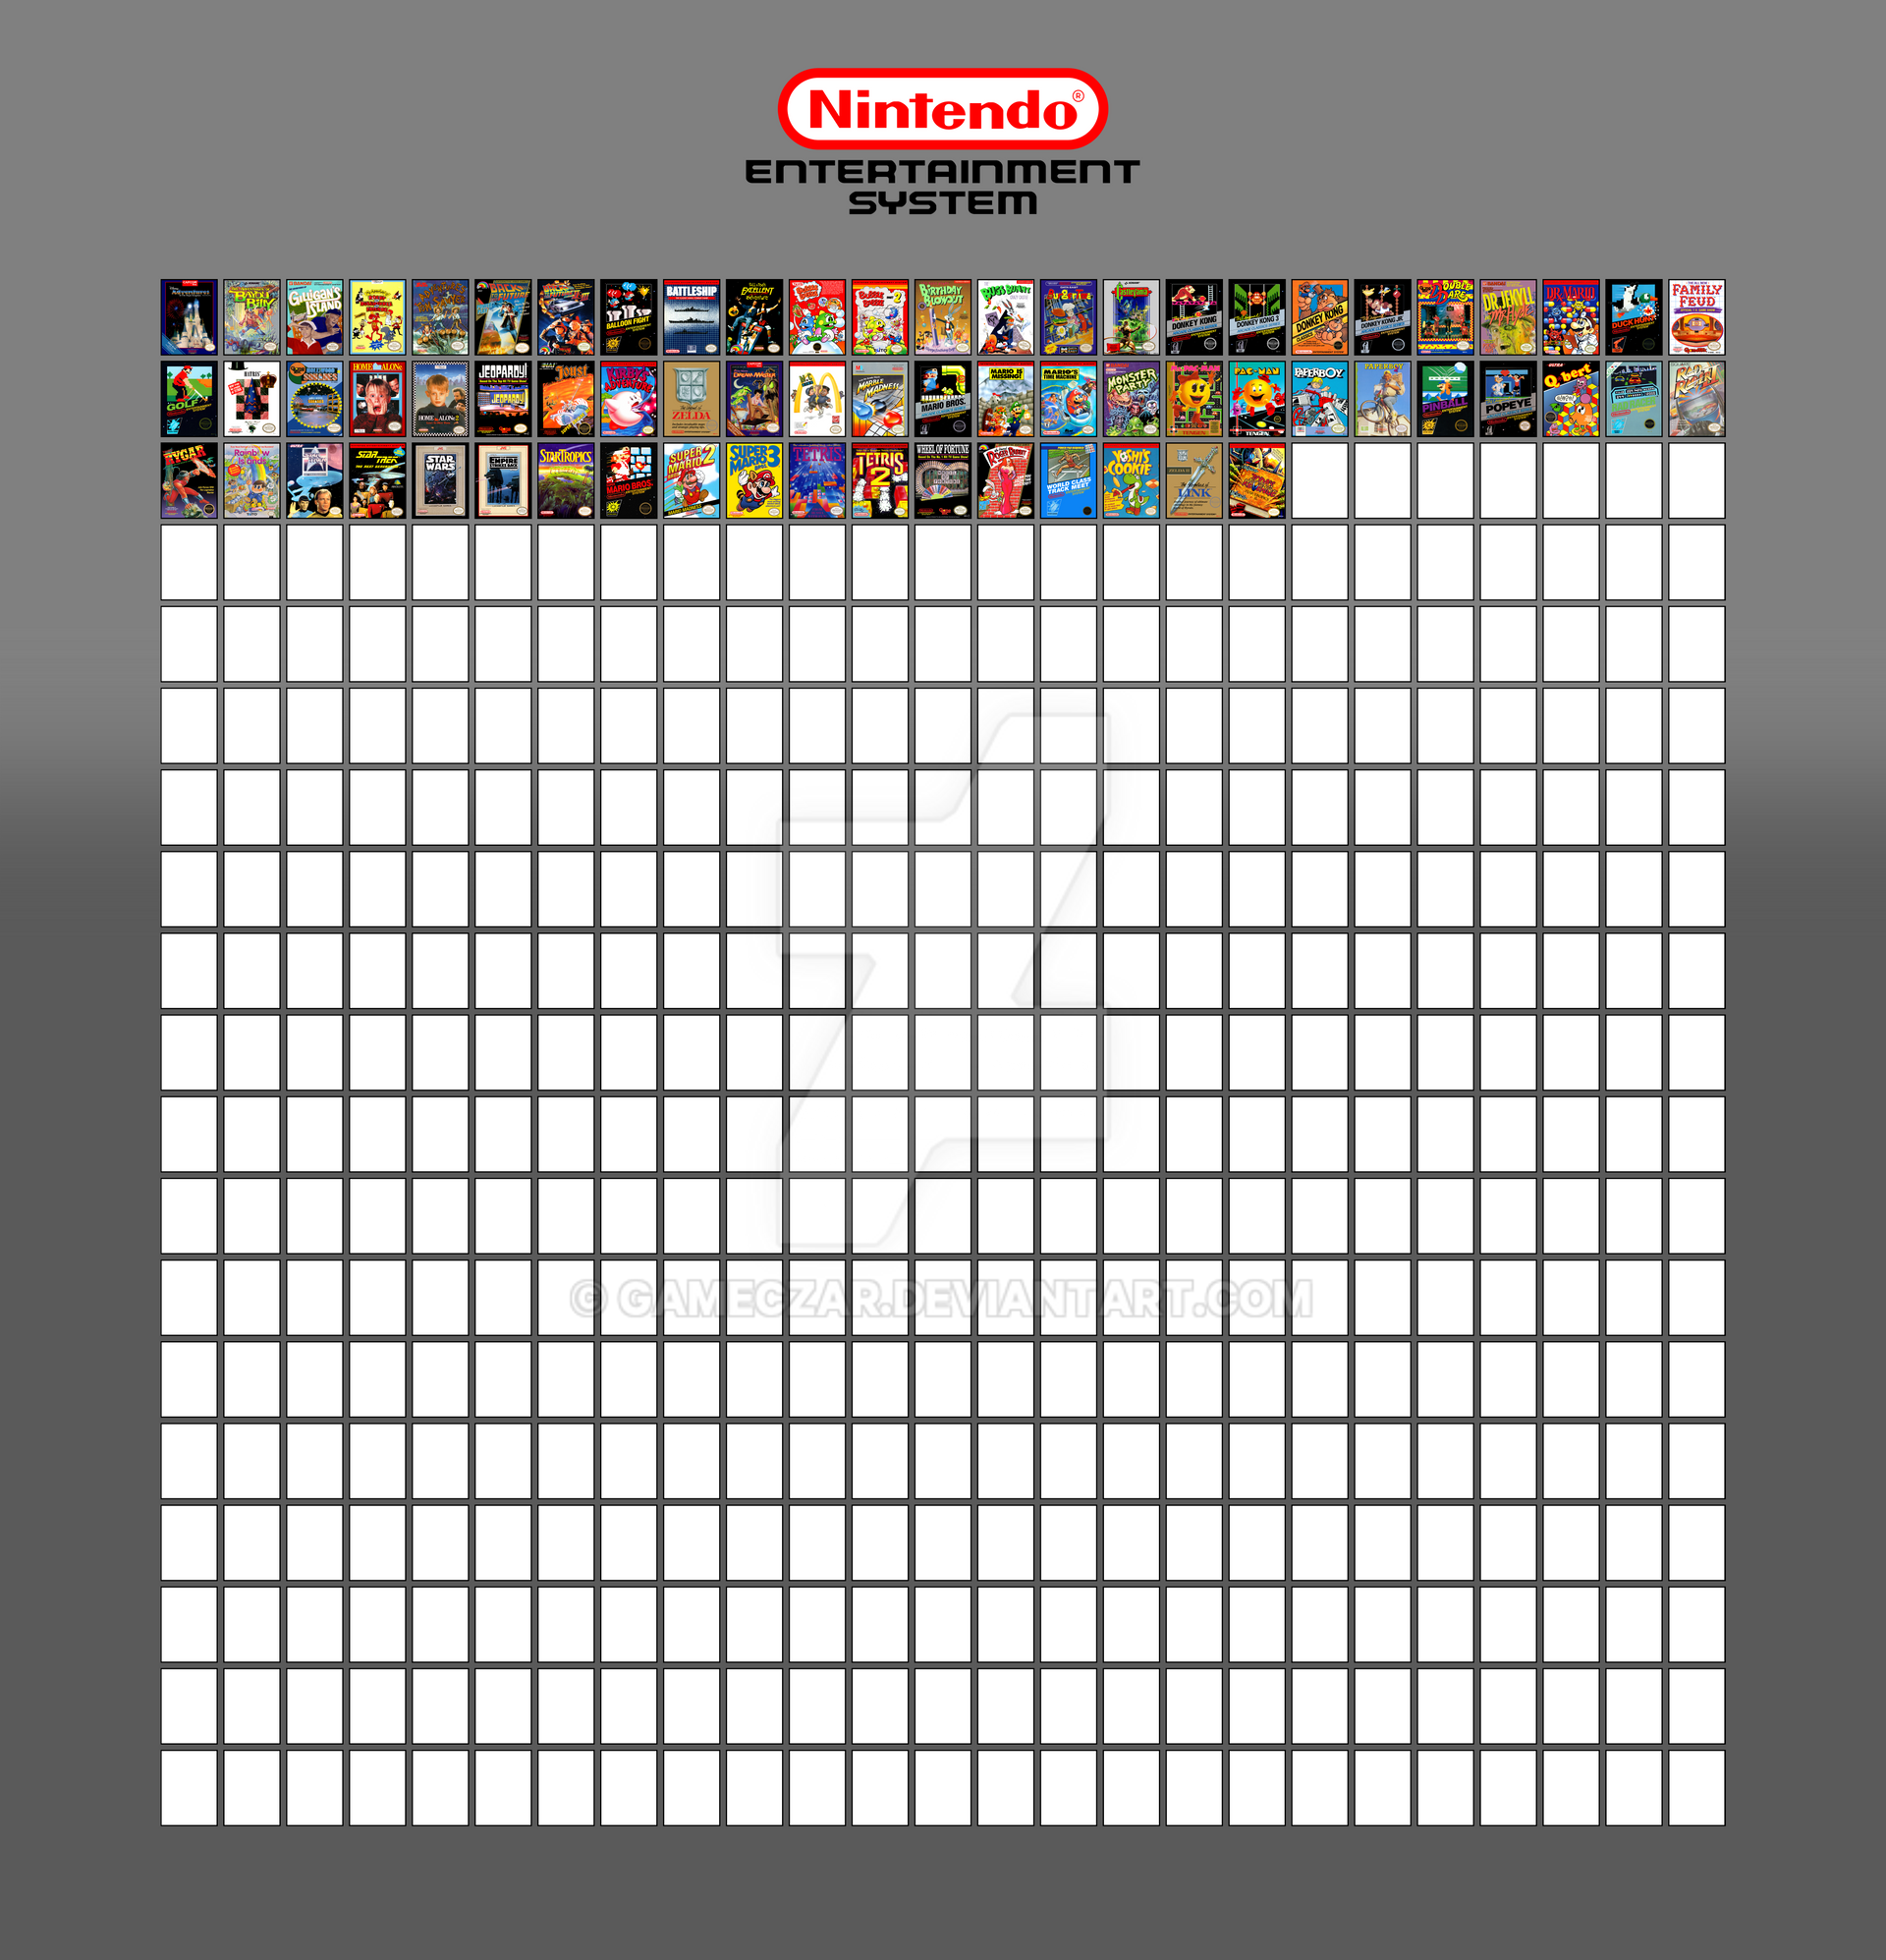 My NES Game Library [Meme] by GameCzar on DeviantArt